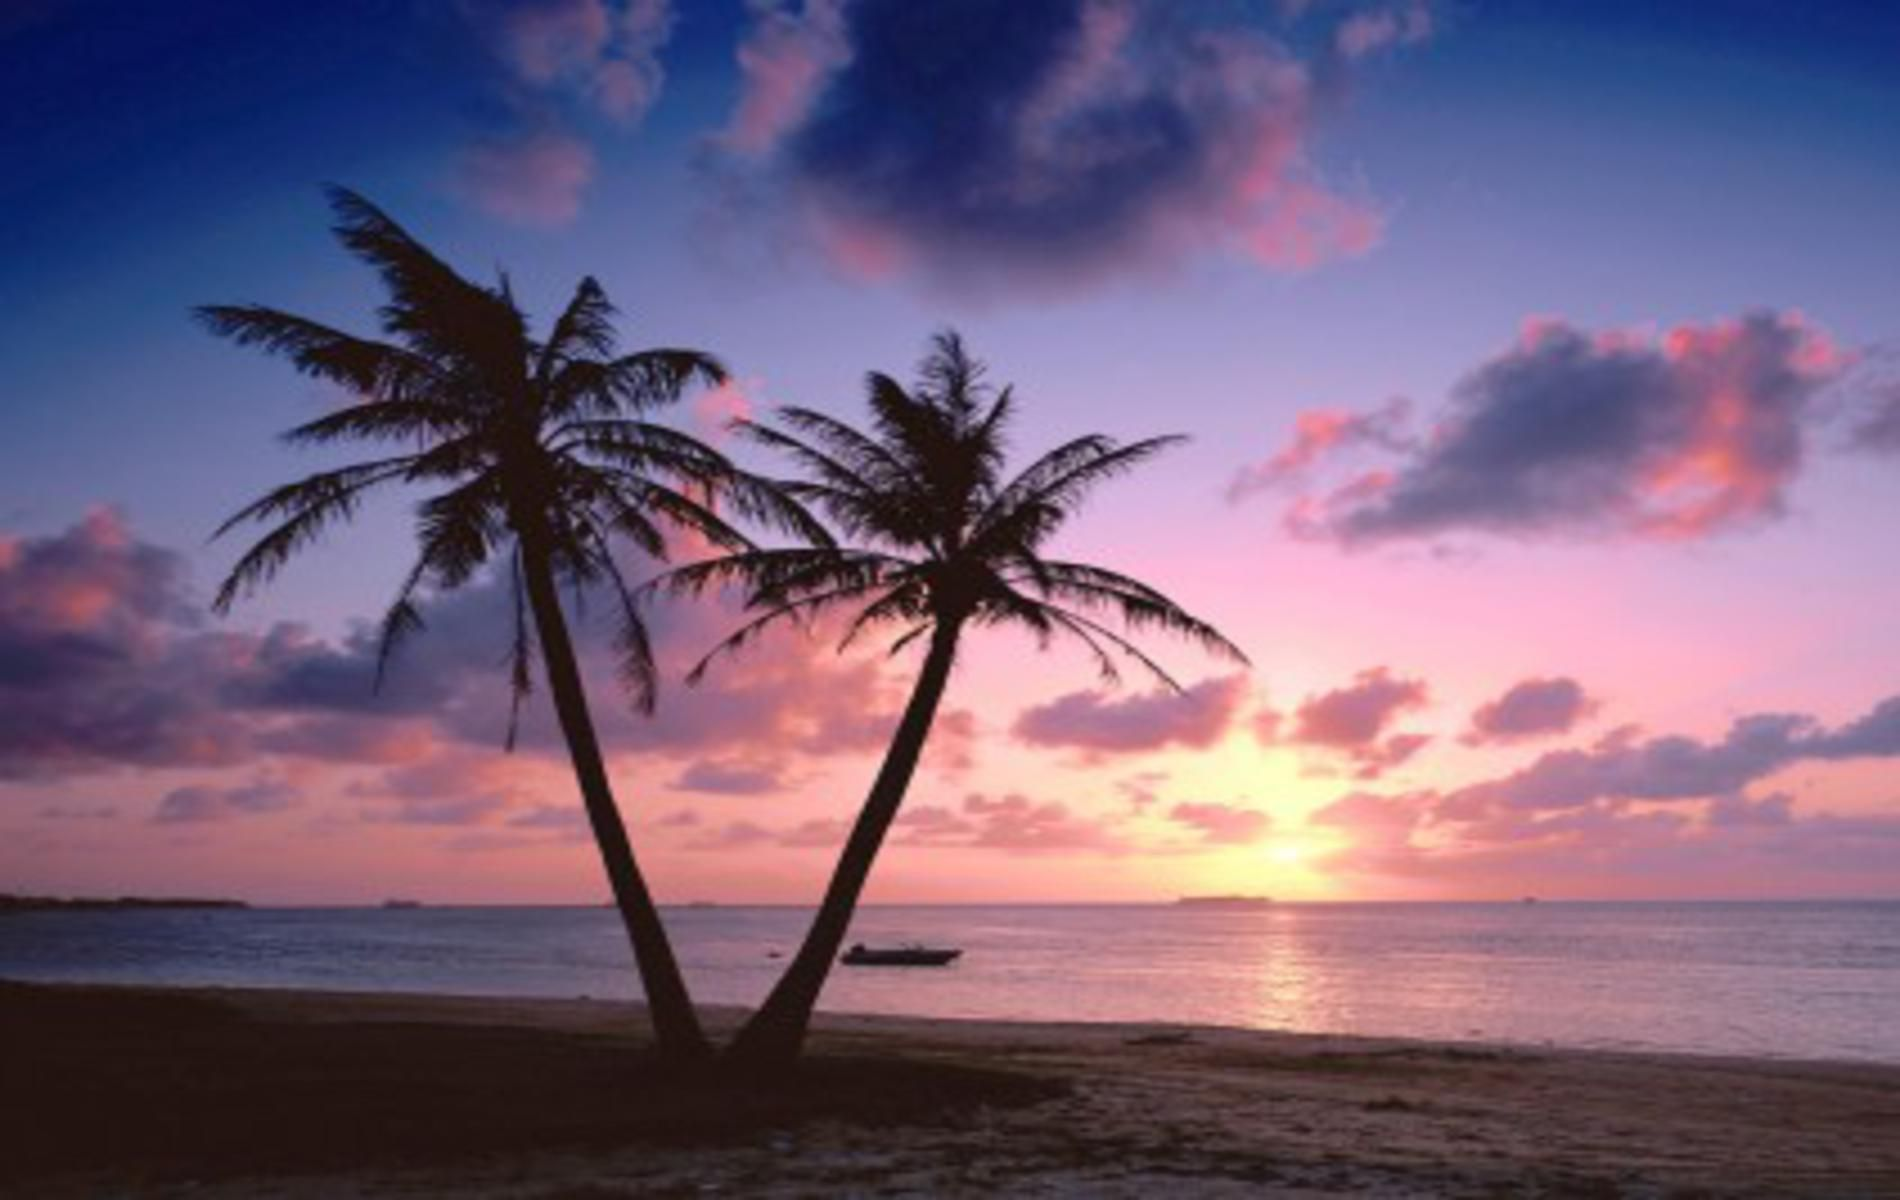 Related Paintings Sunset Landscape Beach Palm Tree